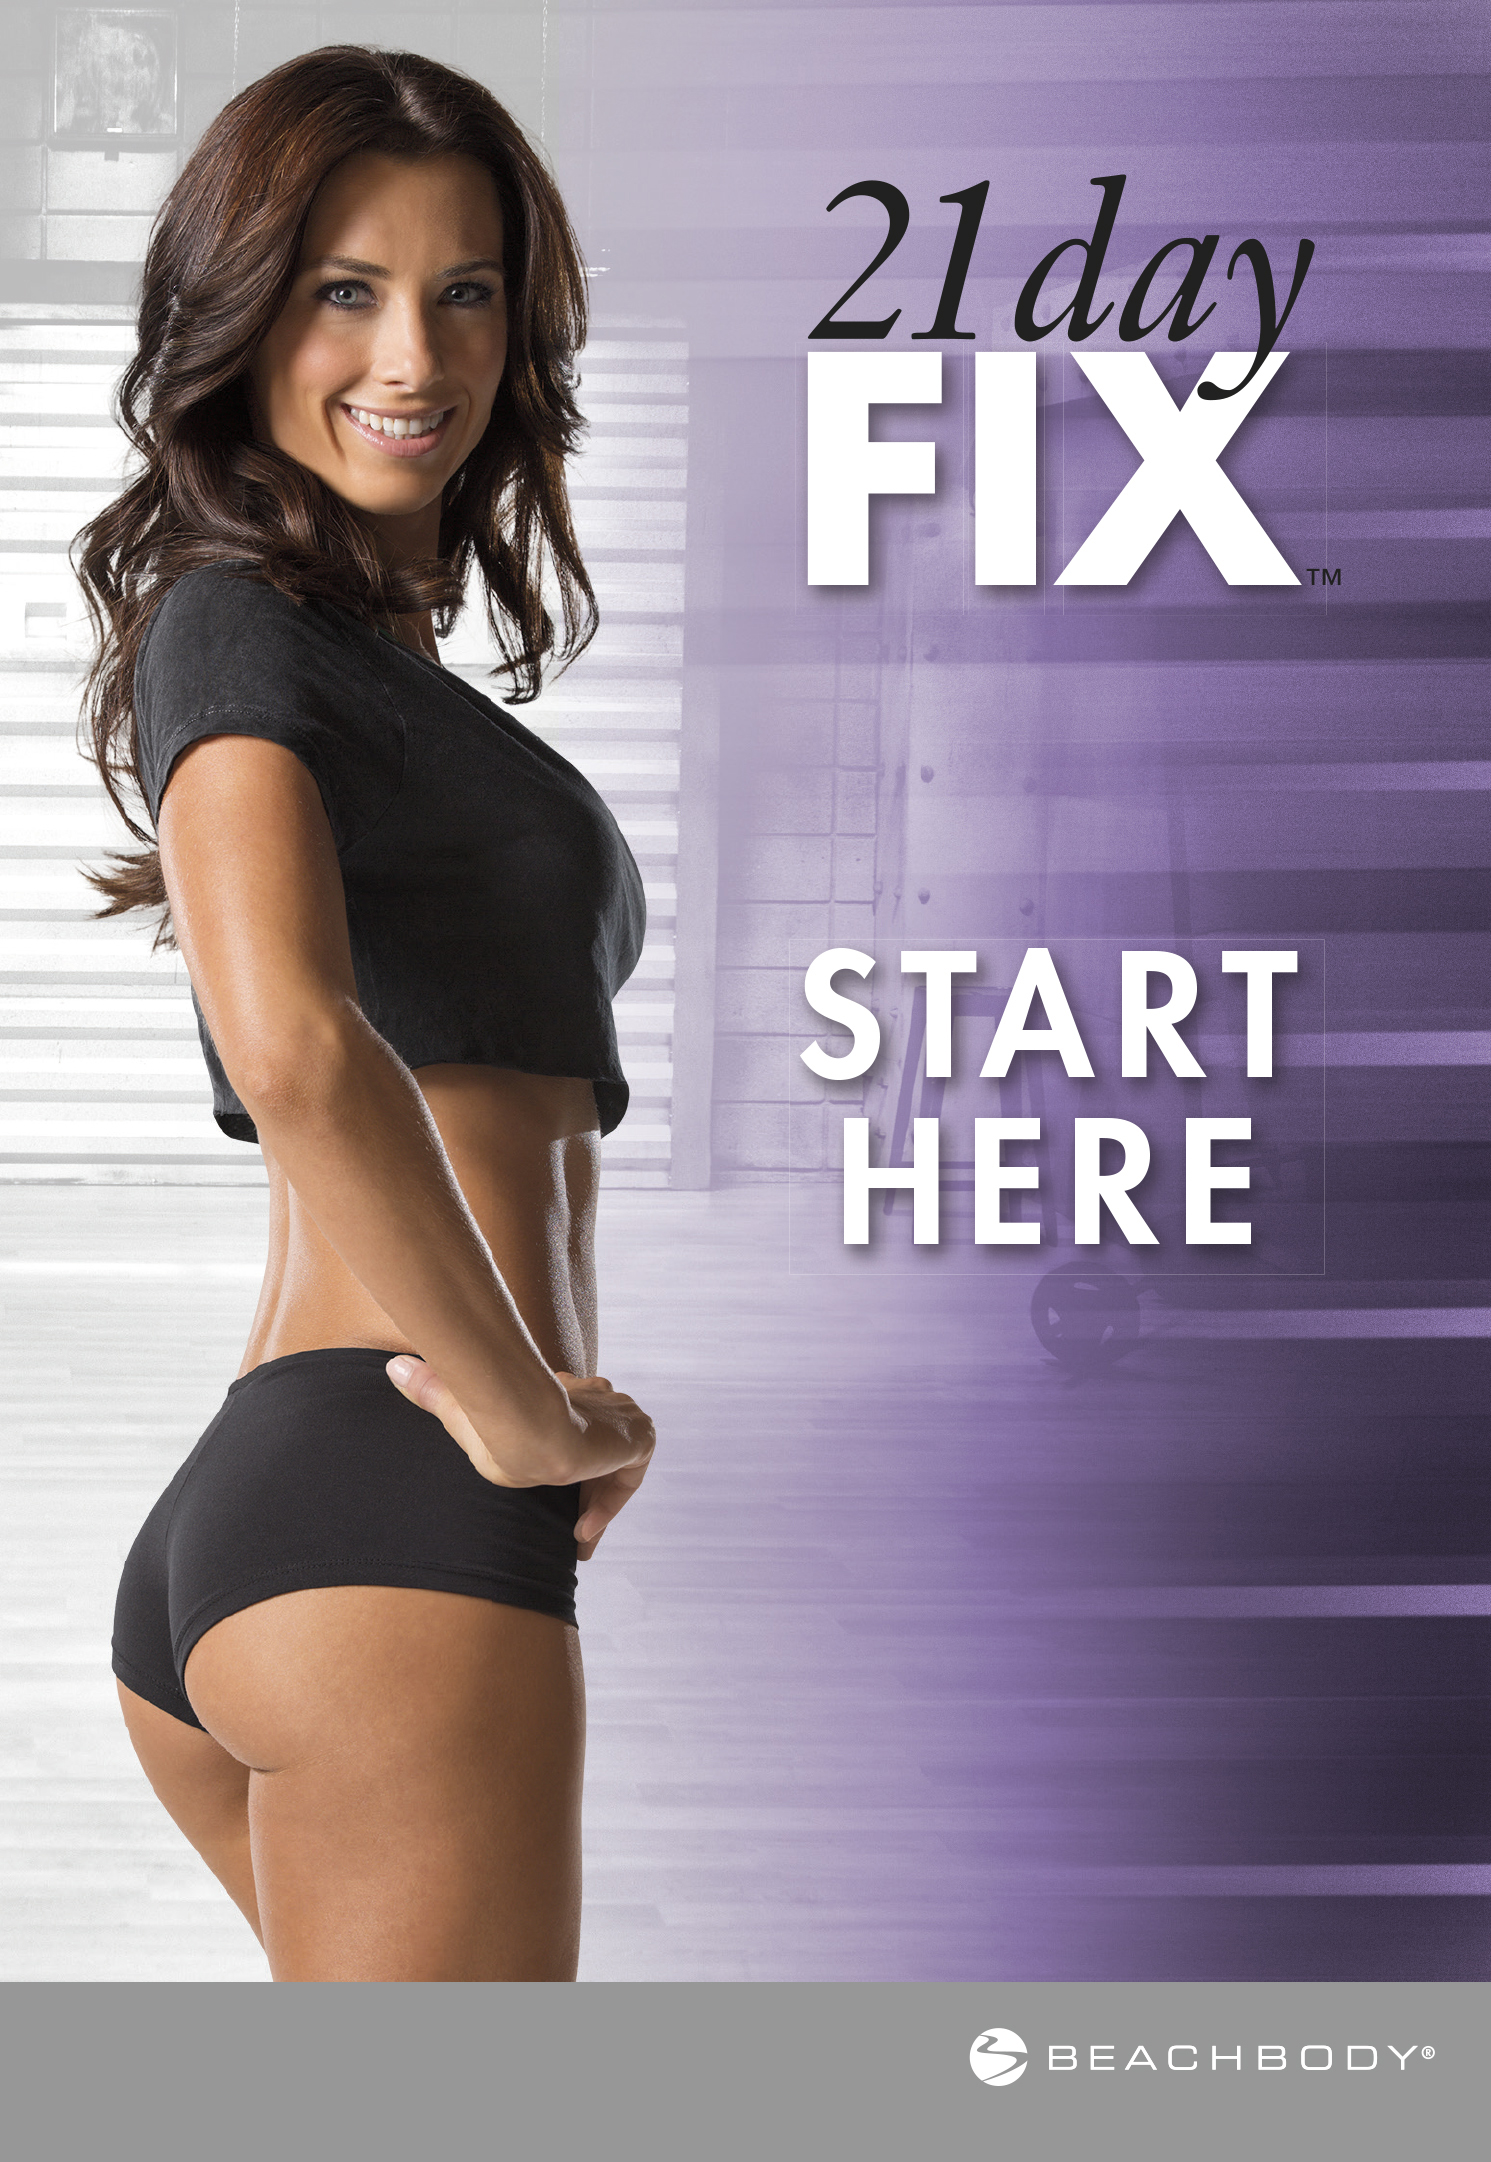 Alex_Ardenti_21day_fix_Autumn_Calabrese_beachbody_dvd_3